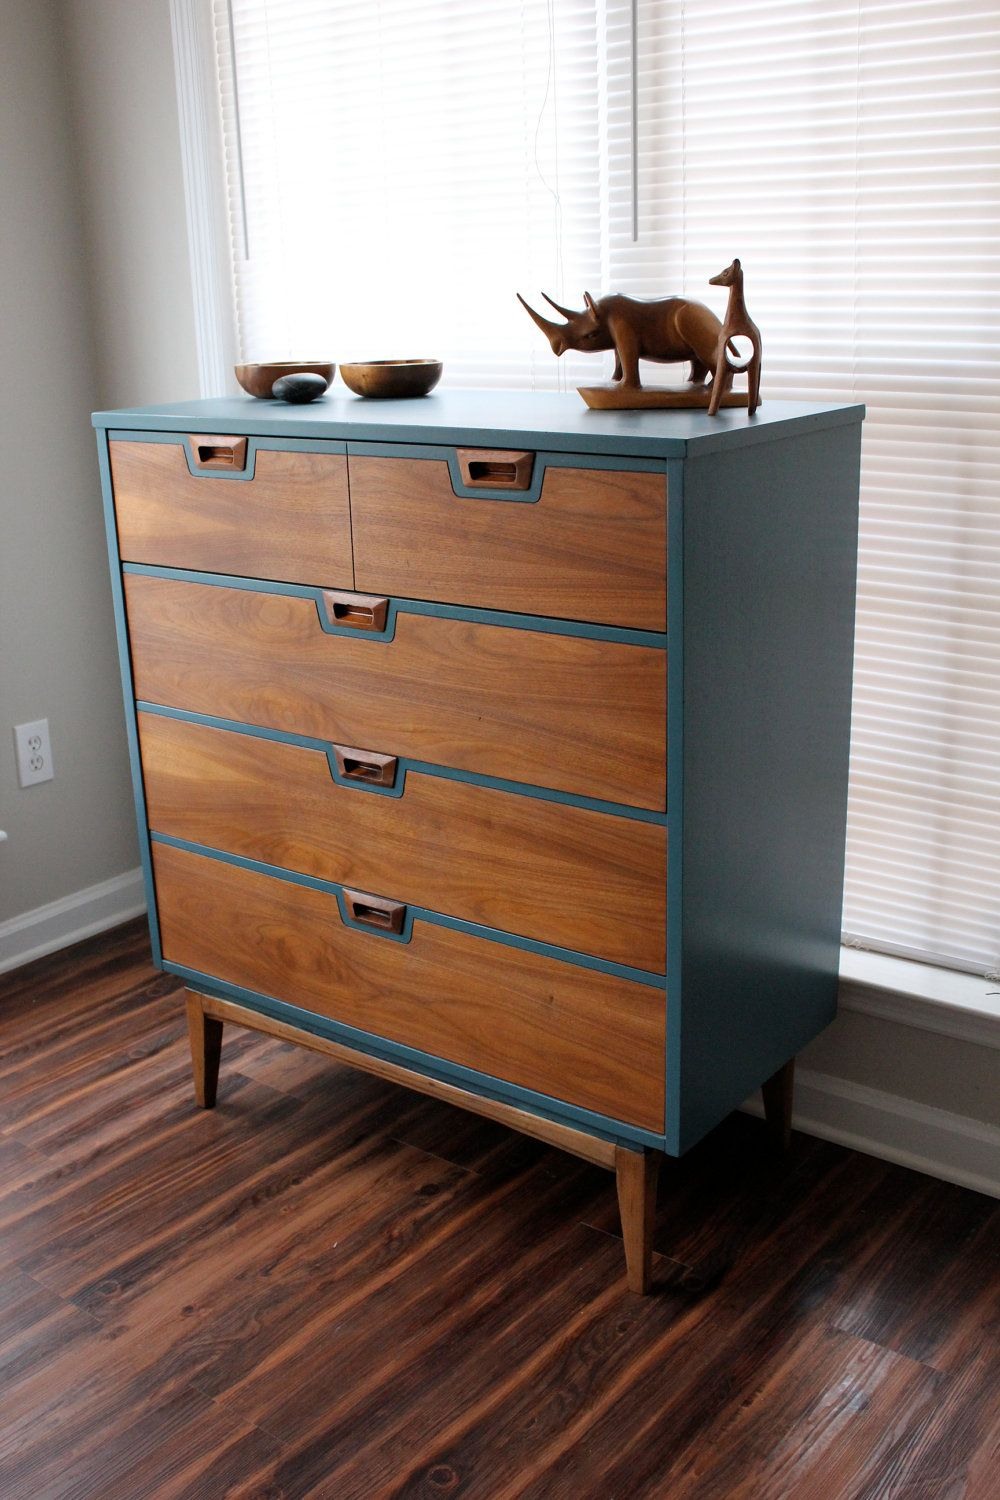 Best Seeking Mid Century Dresser For Changing Table I Think 400 x 300